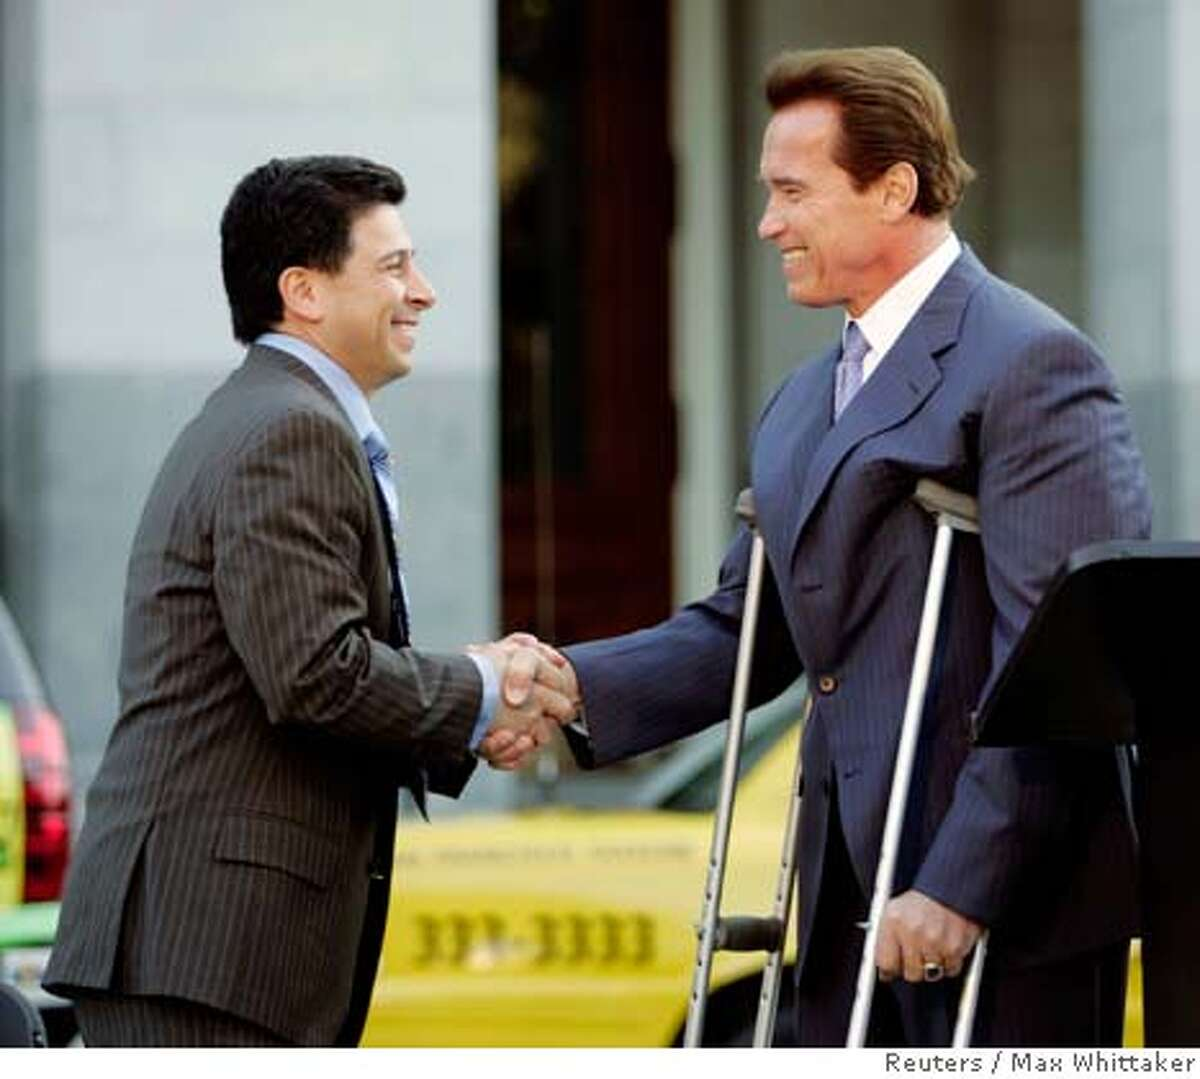 California Assembly Speaker, Democrat Fabian Nunez (L), greets Governor Arnold Schwarzenegger before he signs an executive order establishing a Low Carbon Fuel Standard (LCFS) for transportation fuels sold in California, at the State Capitol in Sacramento, California January 18, 2007. By 2020 the standard will reduce the carbon intensity of California's passenger vehicle fuels by at least 10 percent. REUTERS/Max Whittaker (UNITED STATES)